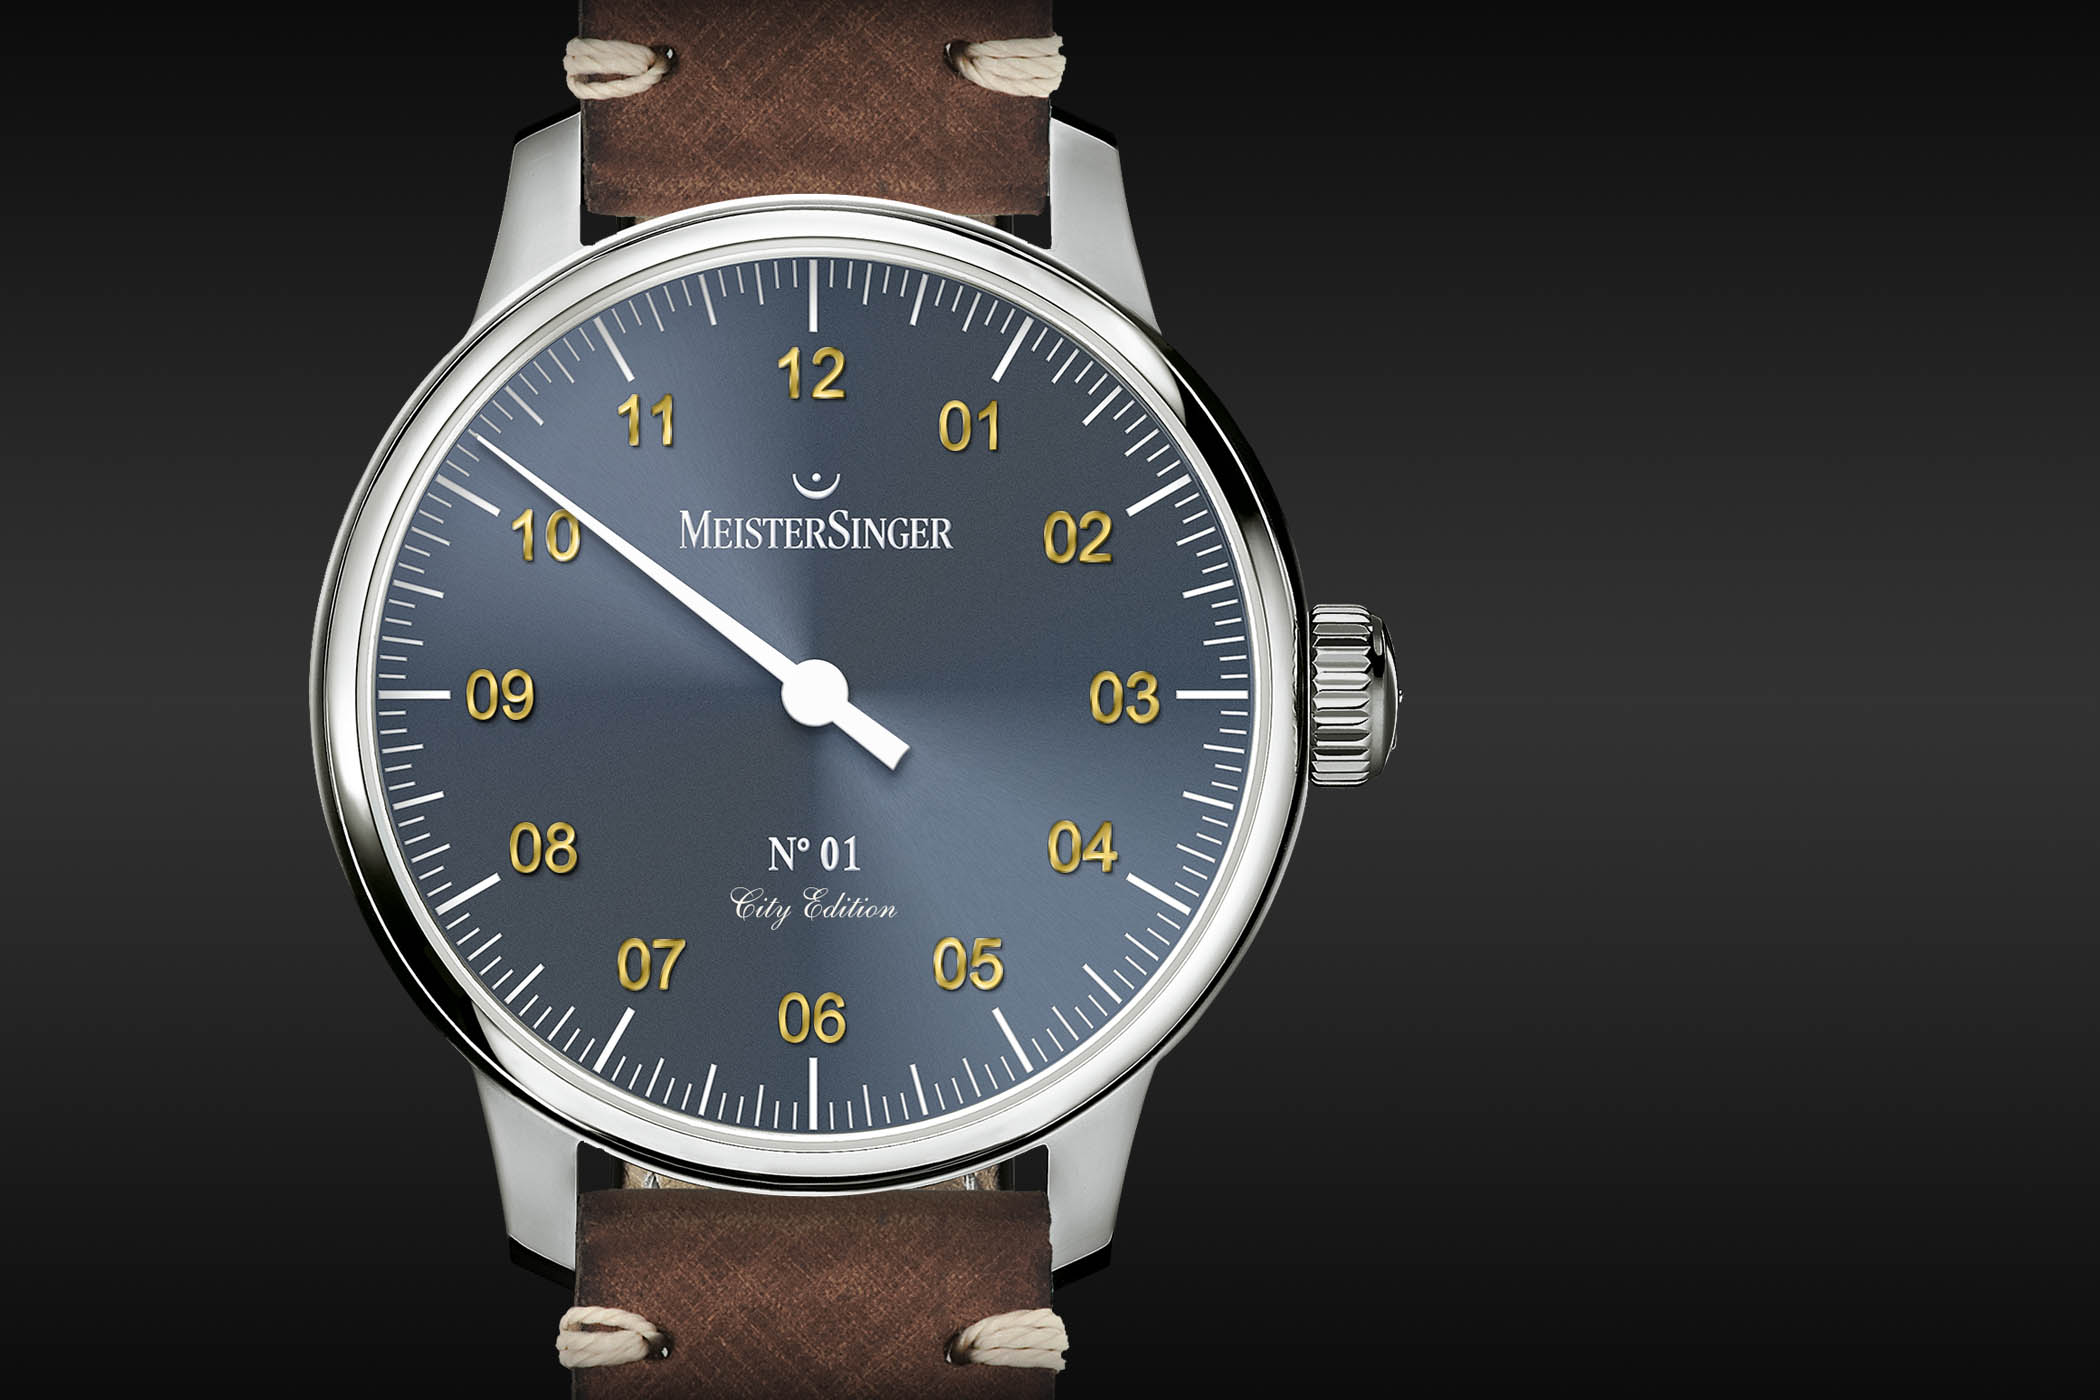 MeisterSinger No. 01 City Edition